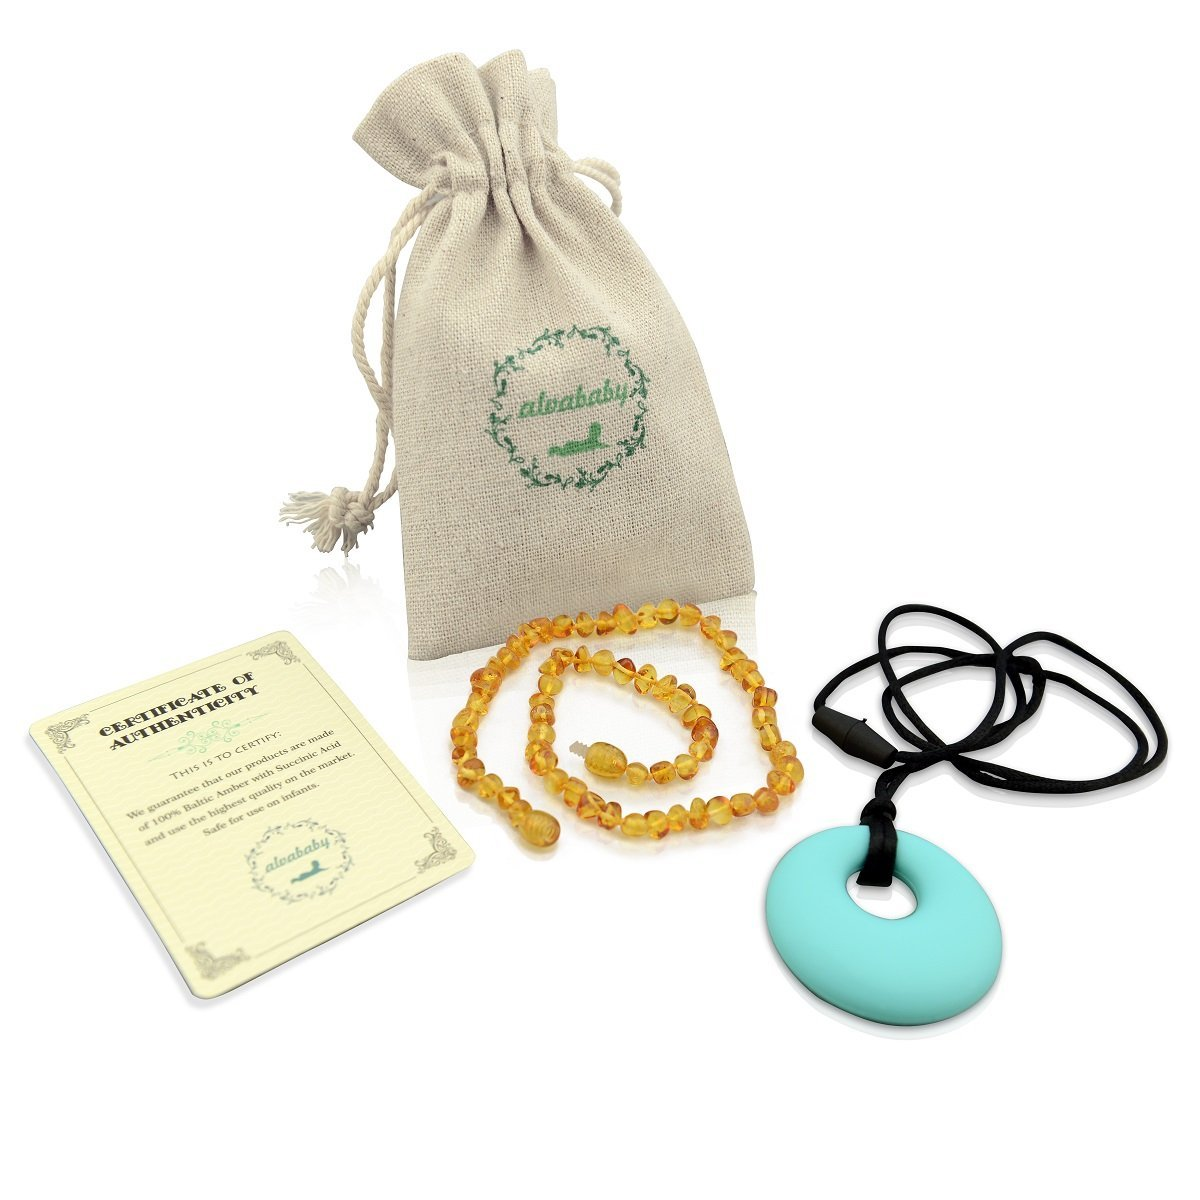 ALVABABY Amber Teething Necklace for Babies (Unisex) - Anti Flammatory Drooling & Fussiness Reduce Amber Teething Necklace + One Silicon Teething Necklace AN02 by ALVA